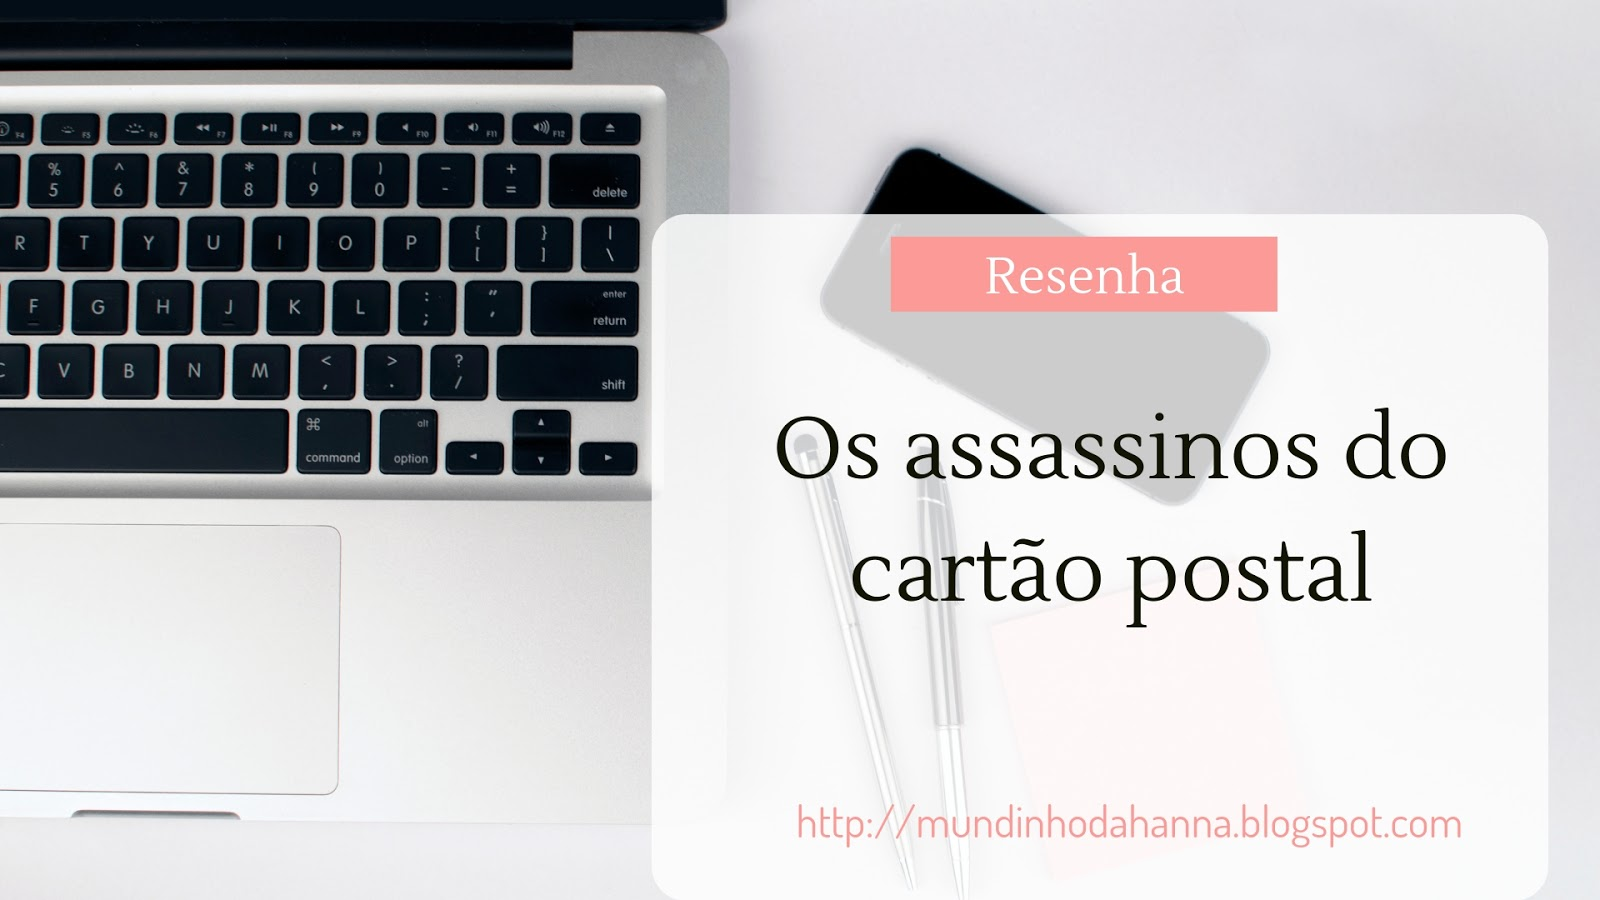 Os assassinos do cartão postal